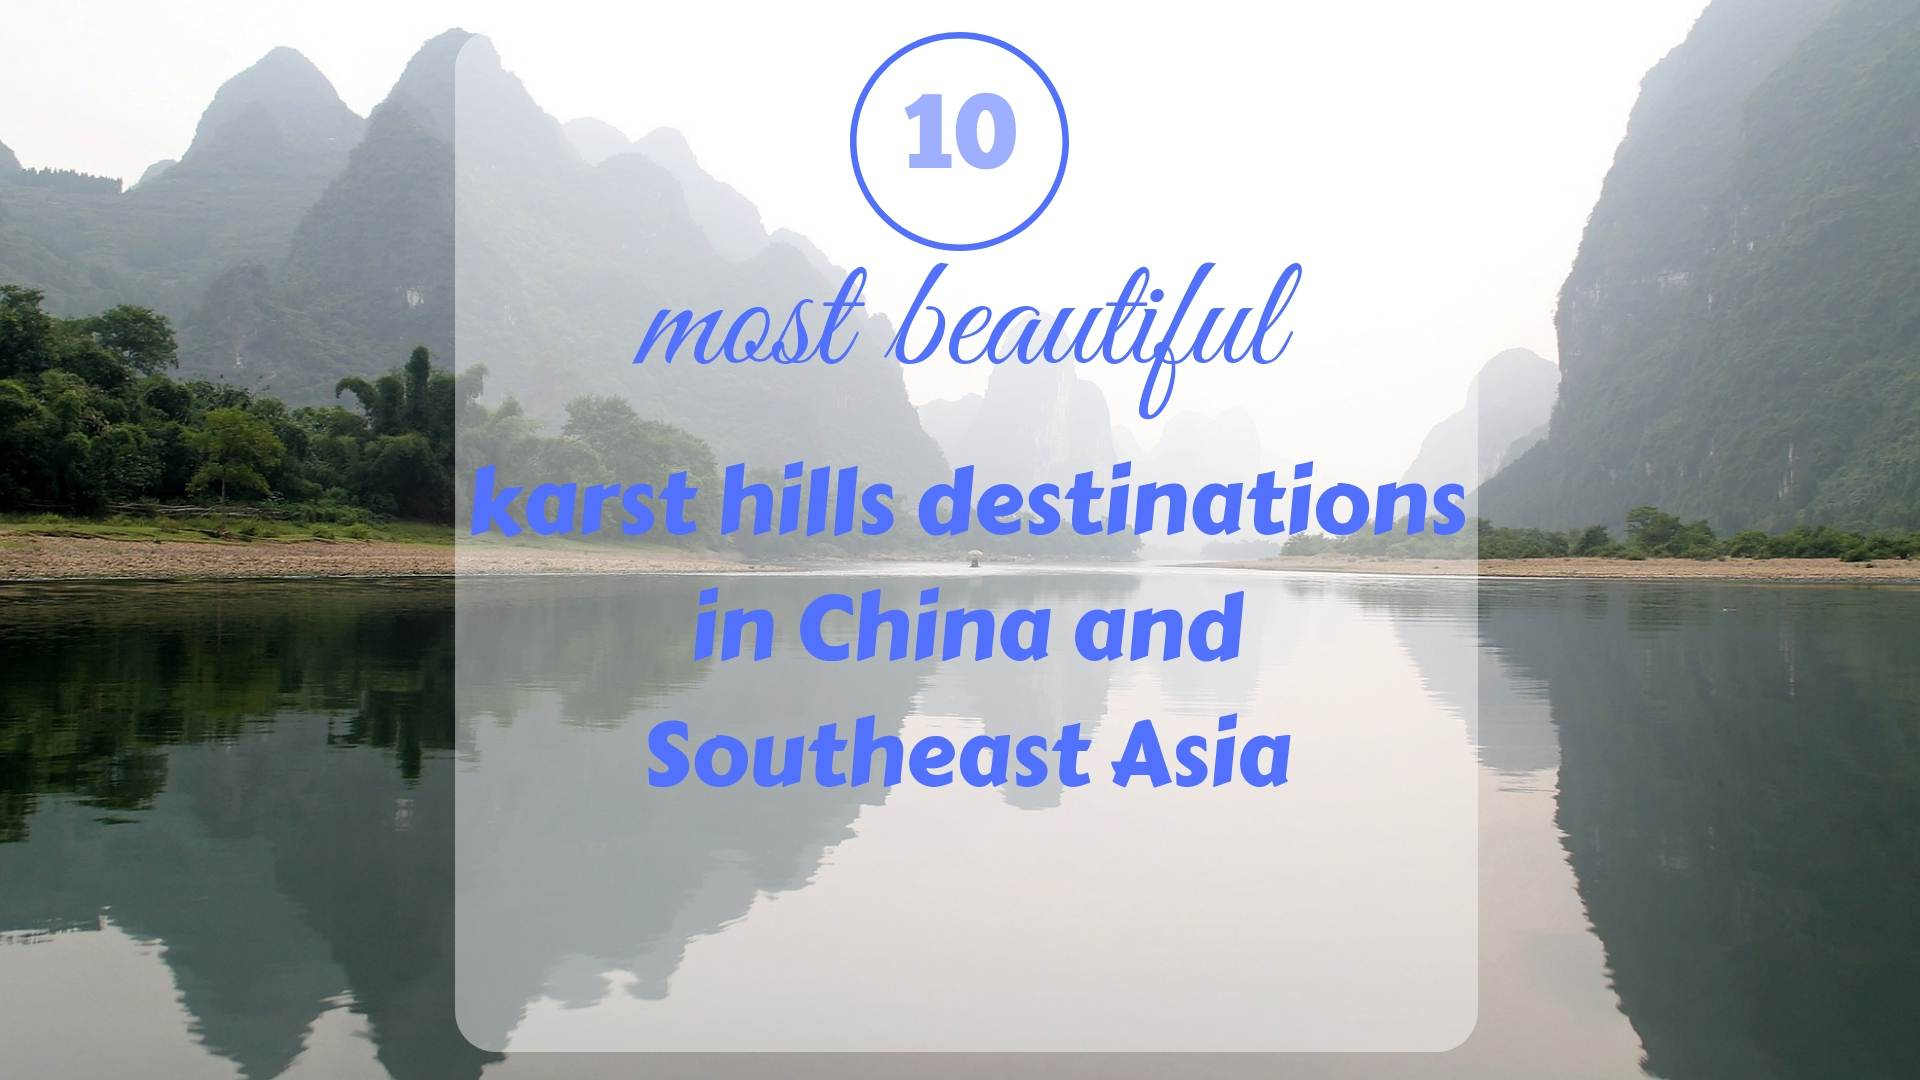 THЕ 10 MOST BEAUTIFUL KARST HILLS DESTINATIONS in China and Southeast Asia